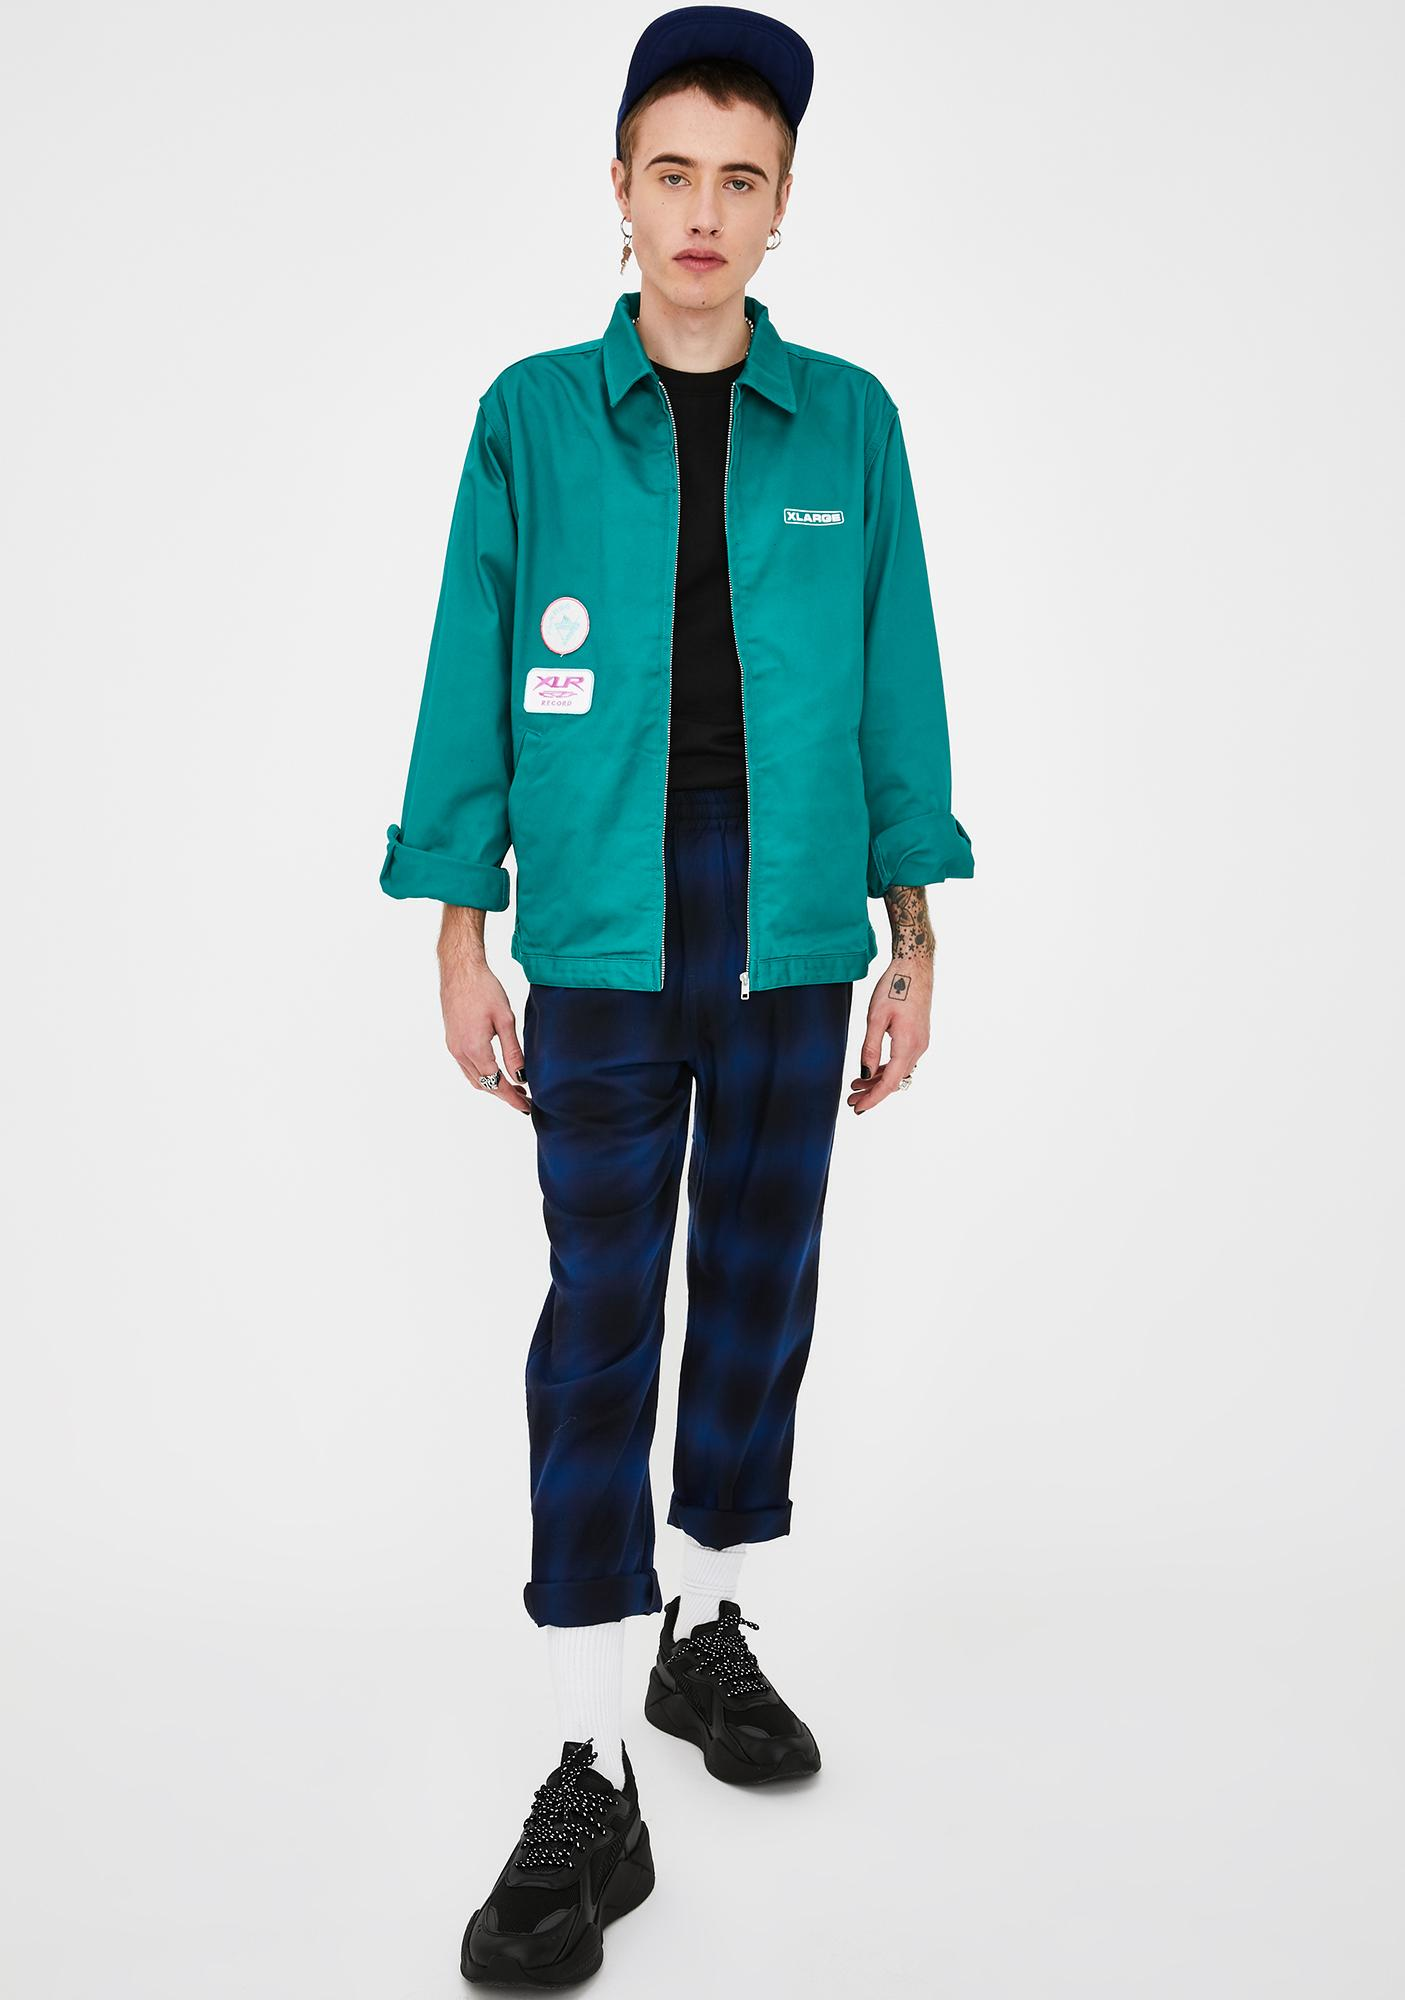 XLARGE Patched Green Work Jacket